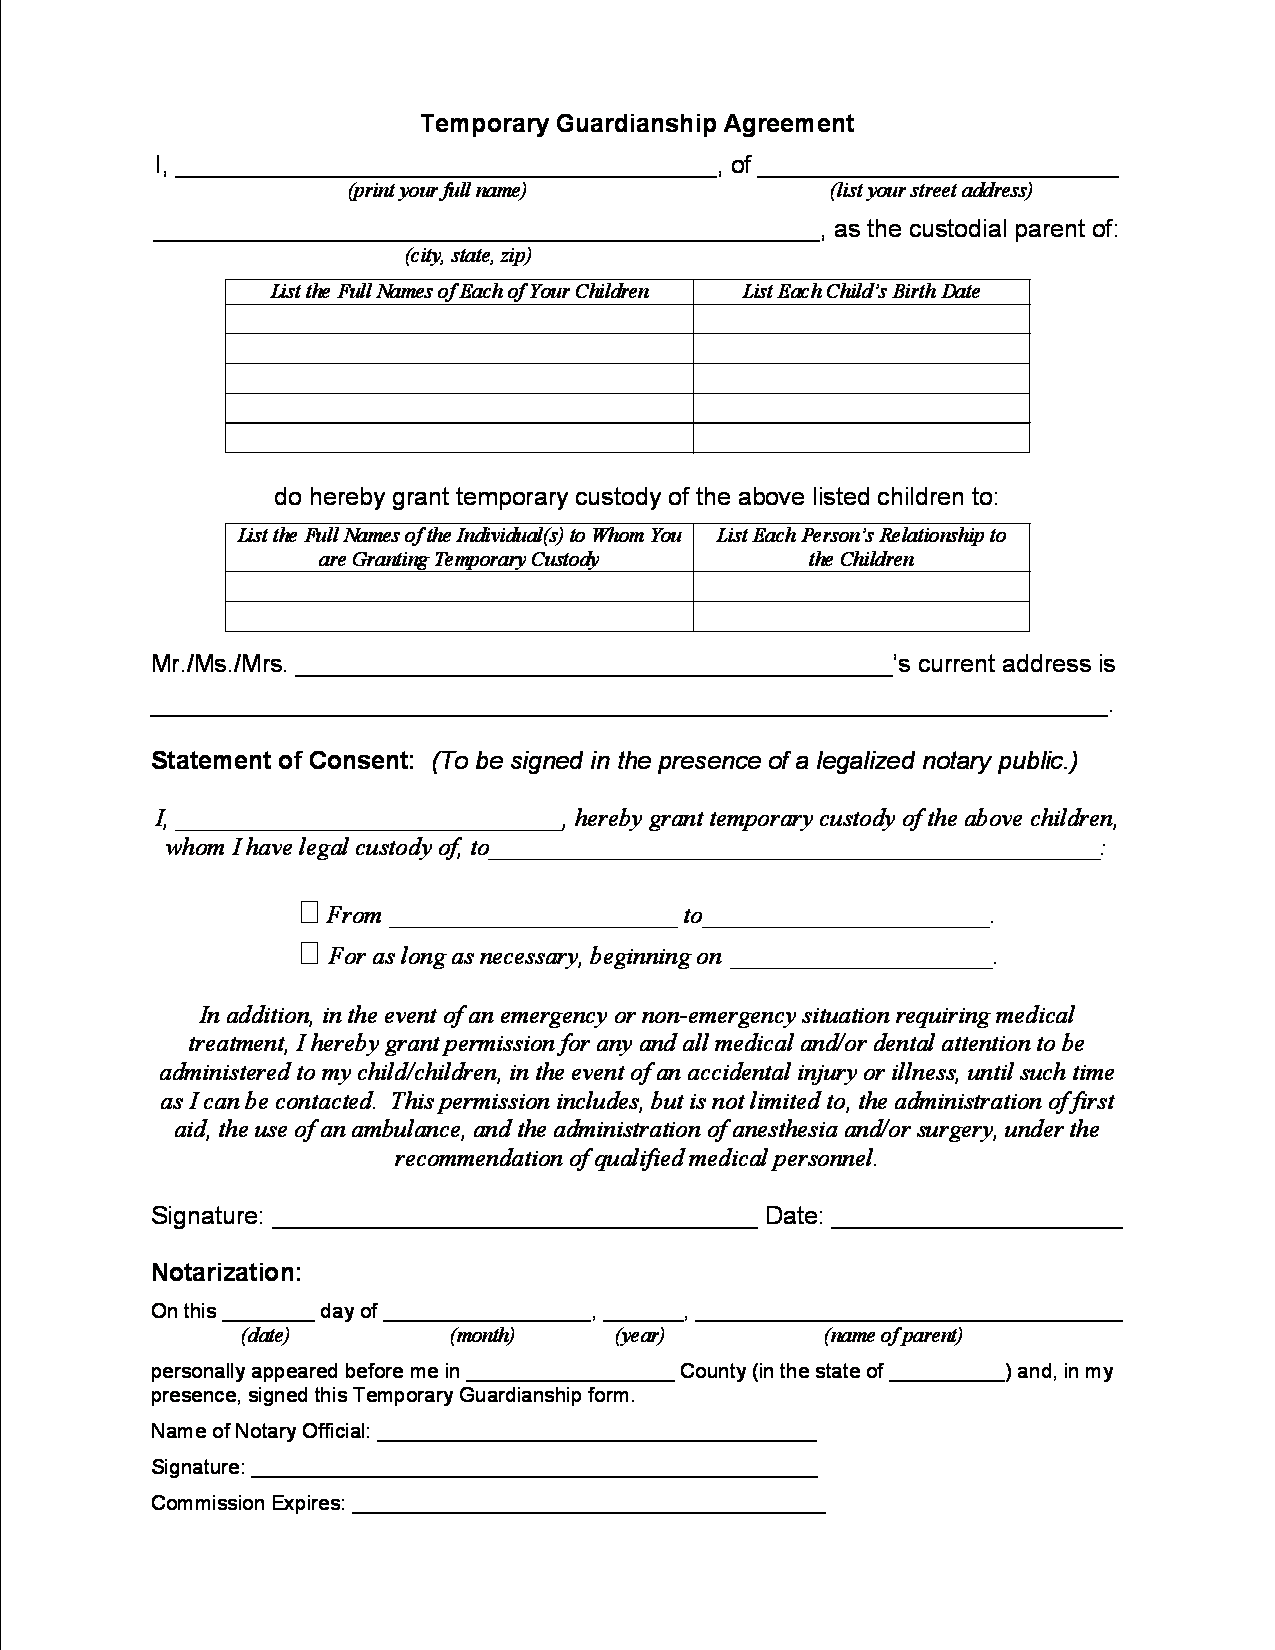 86b99269bfaab45e3e1ad9b668cf51d2 Child Medical Consent Form Texas on printable word, for travel,